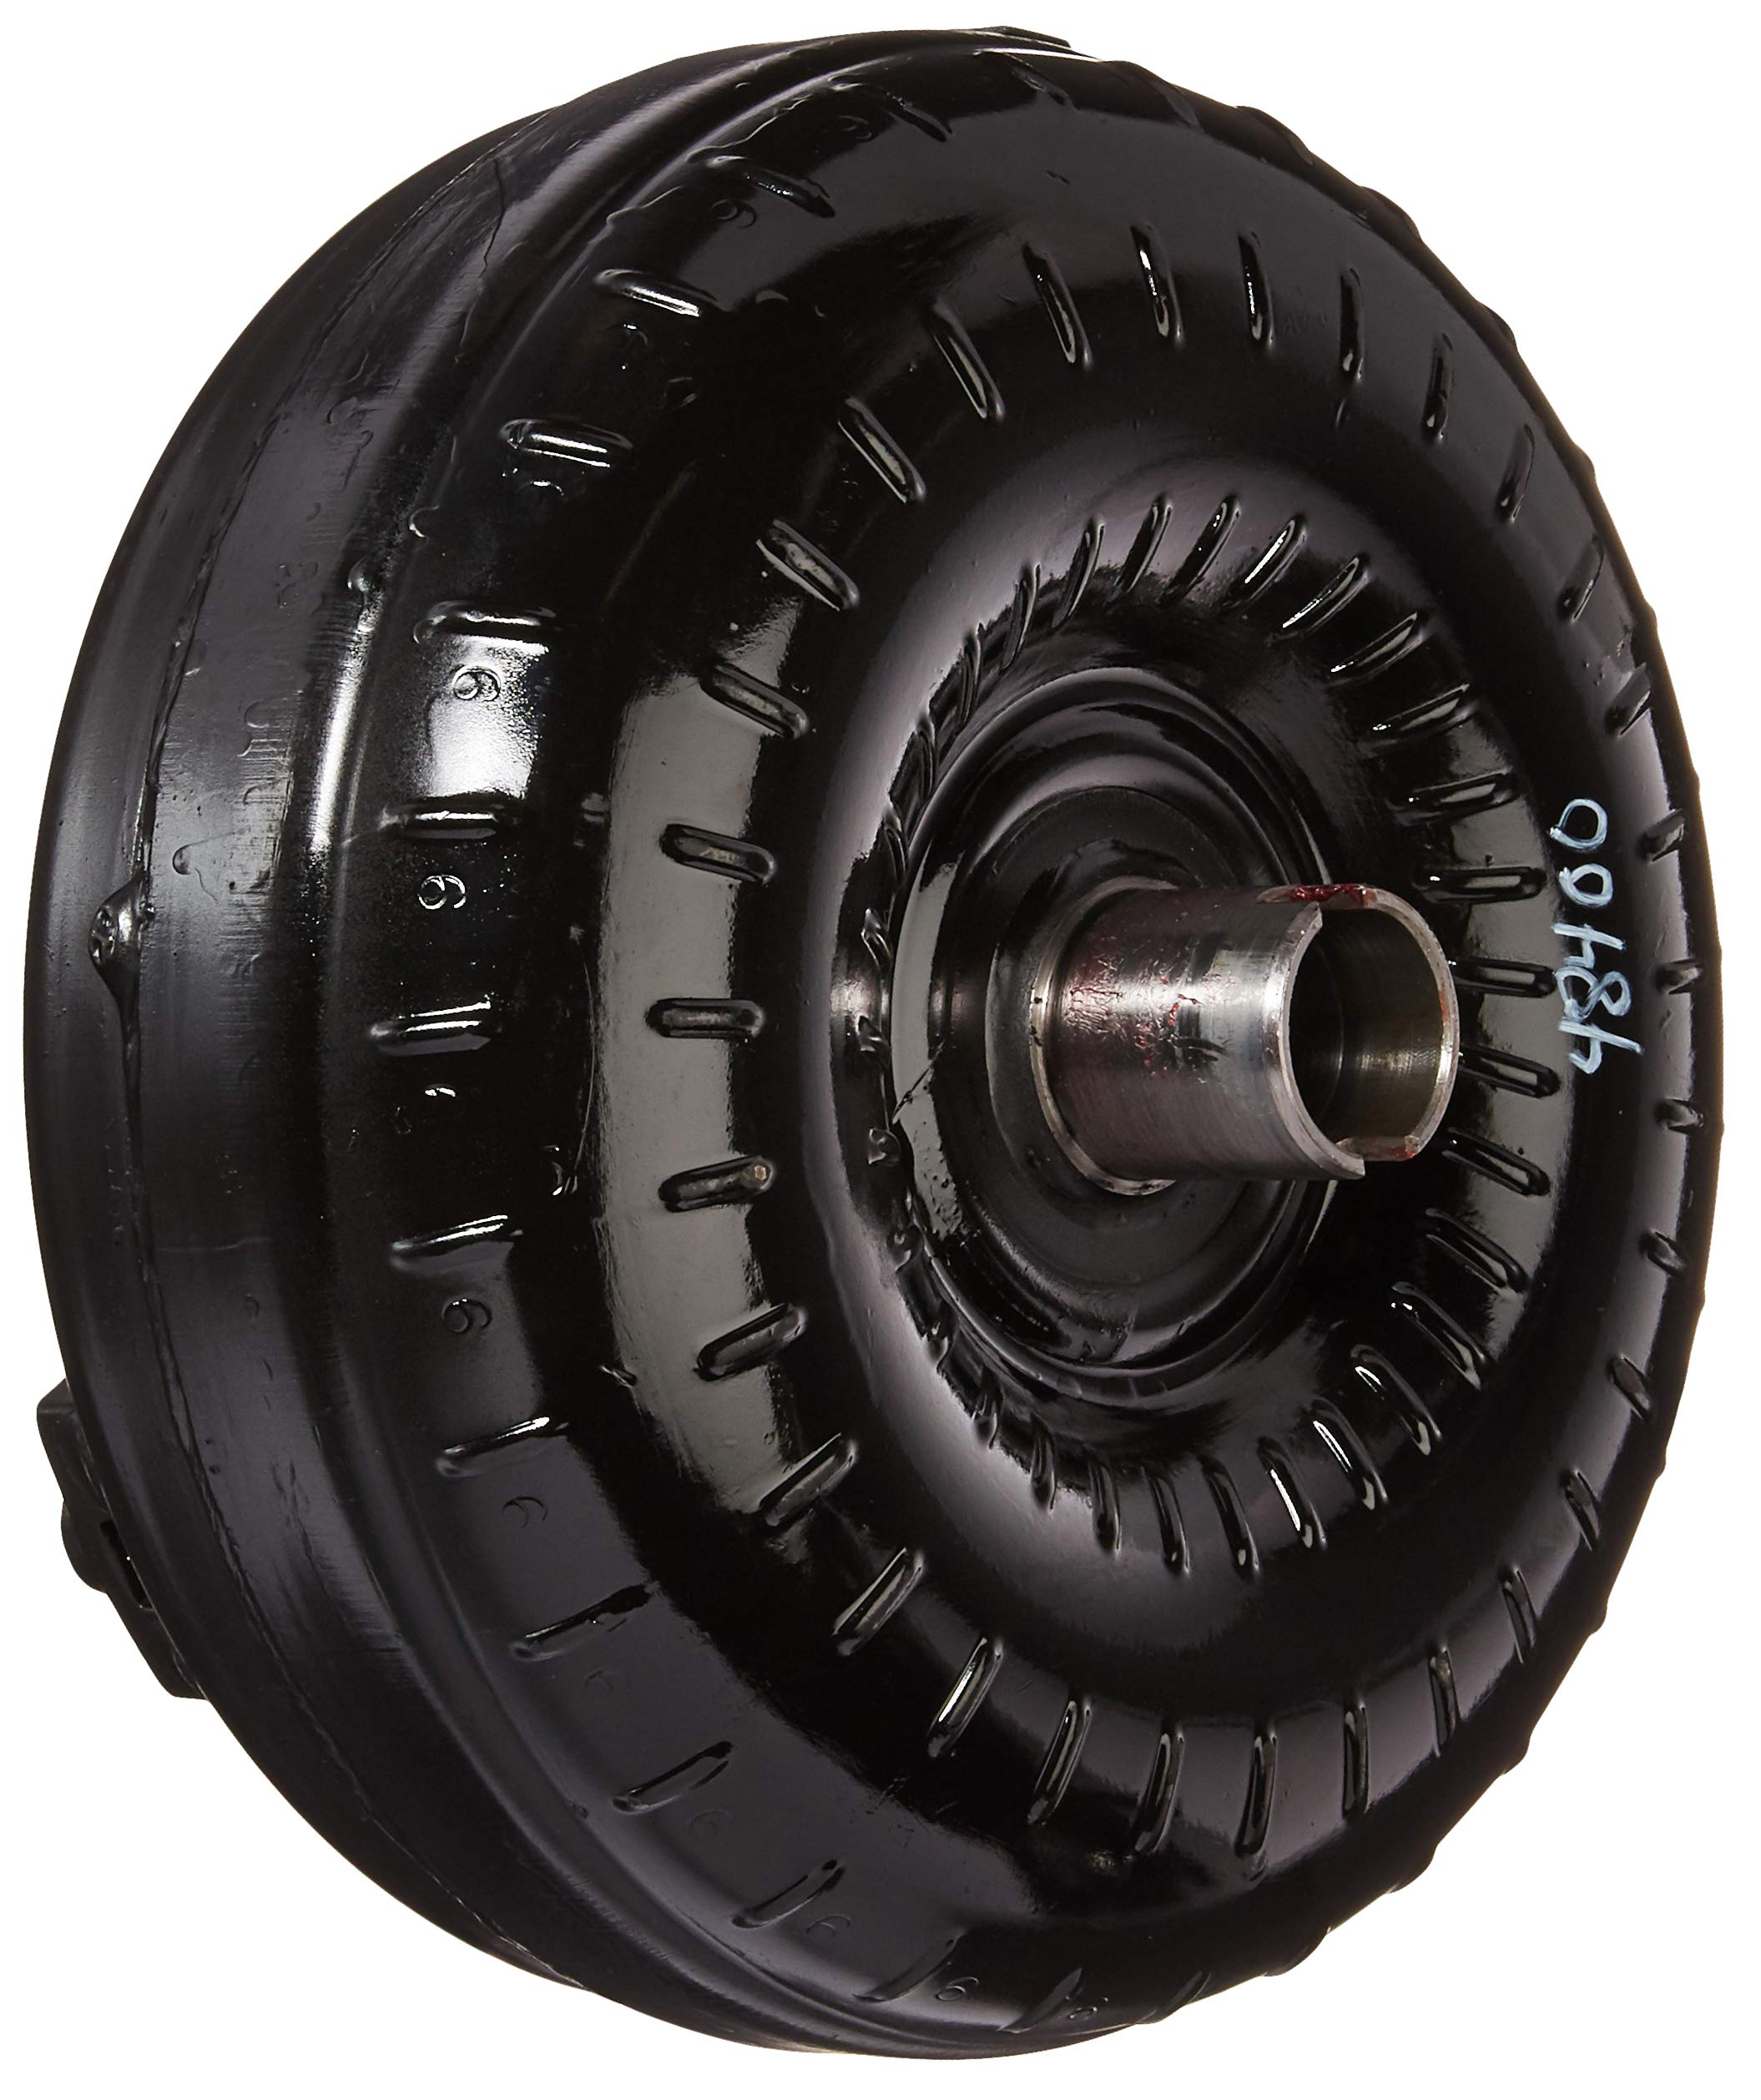 ACC Performance 48400 Torque Converter by ACC Performance